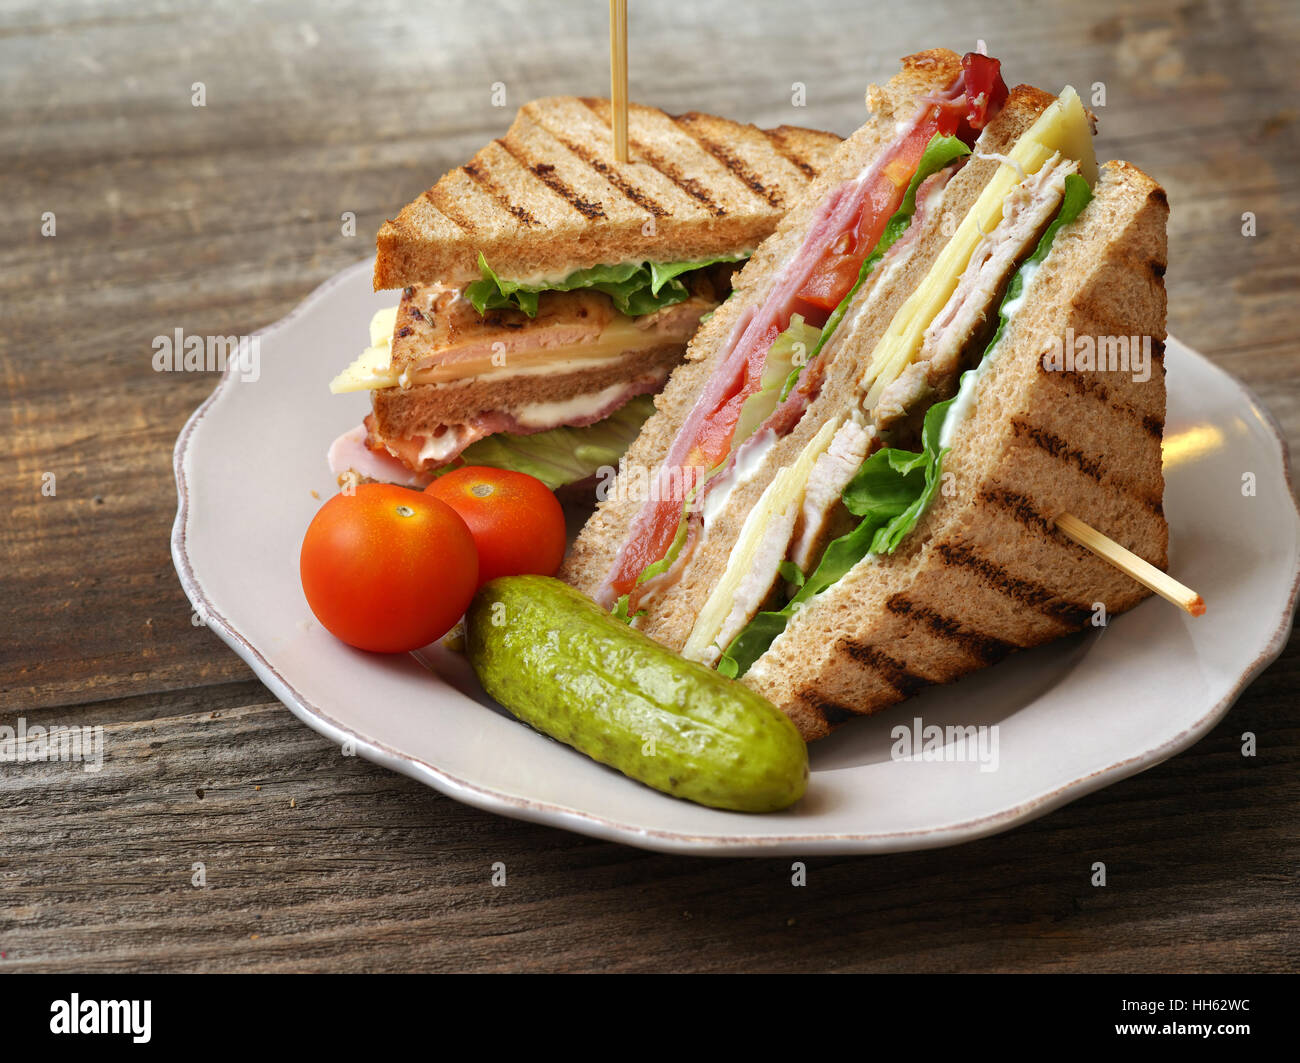 Photo of a club sandwich made with turkey, bacon, ham, tomato, cheese, lettuce, and garnished with a pickle and - Stock Image